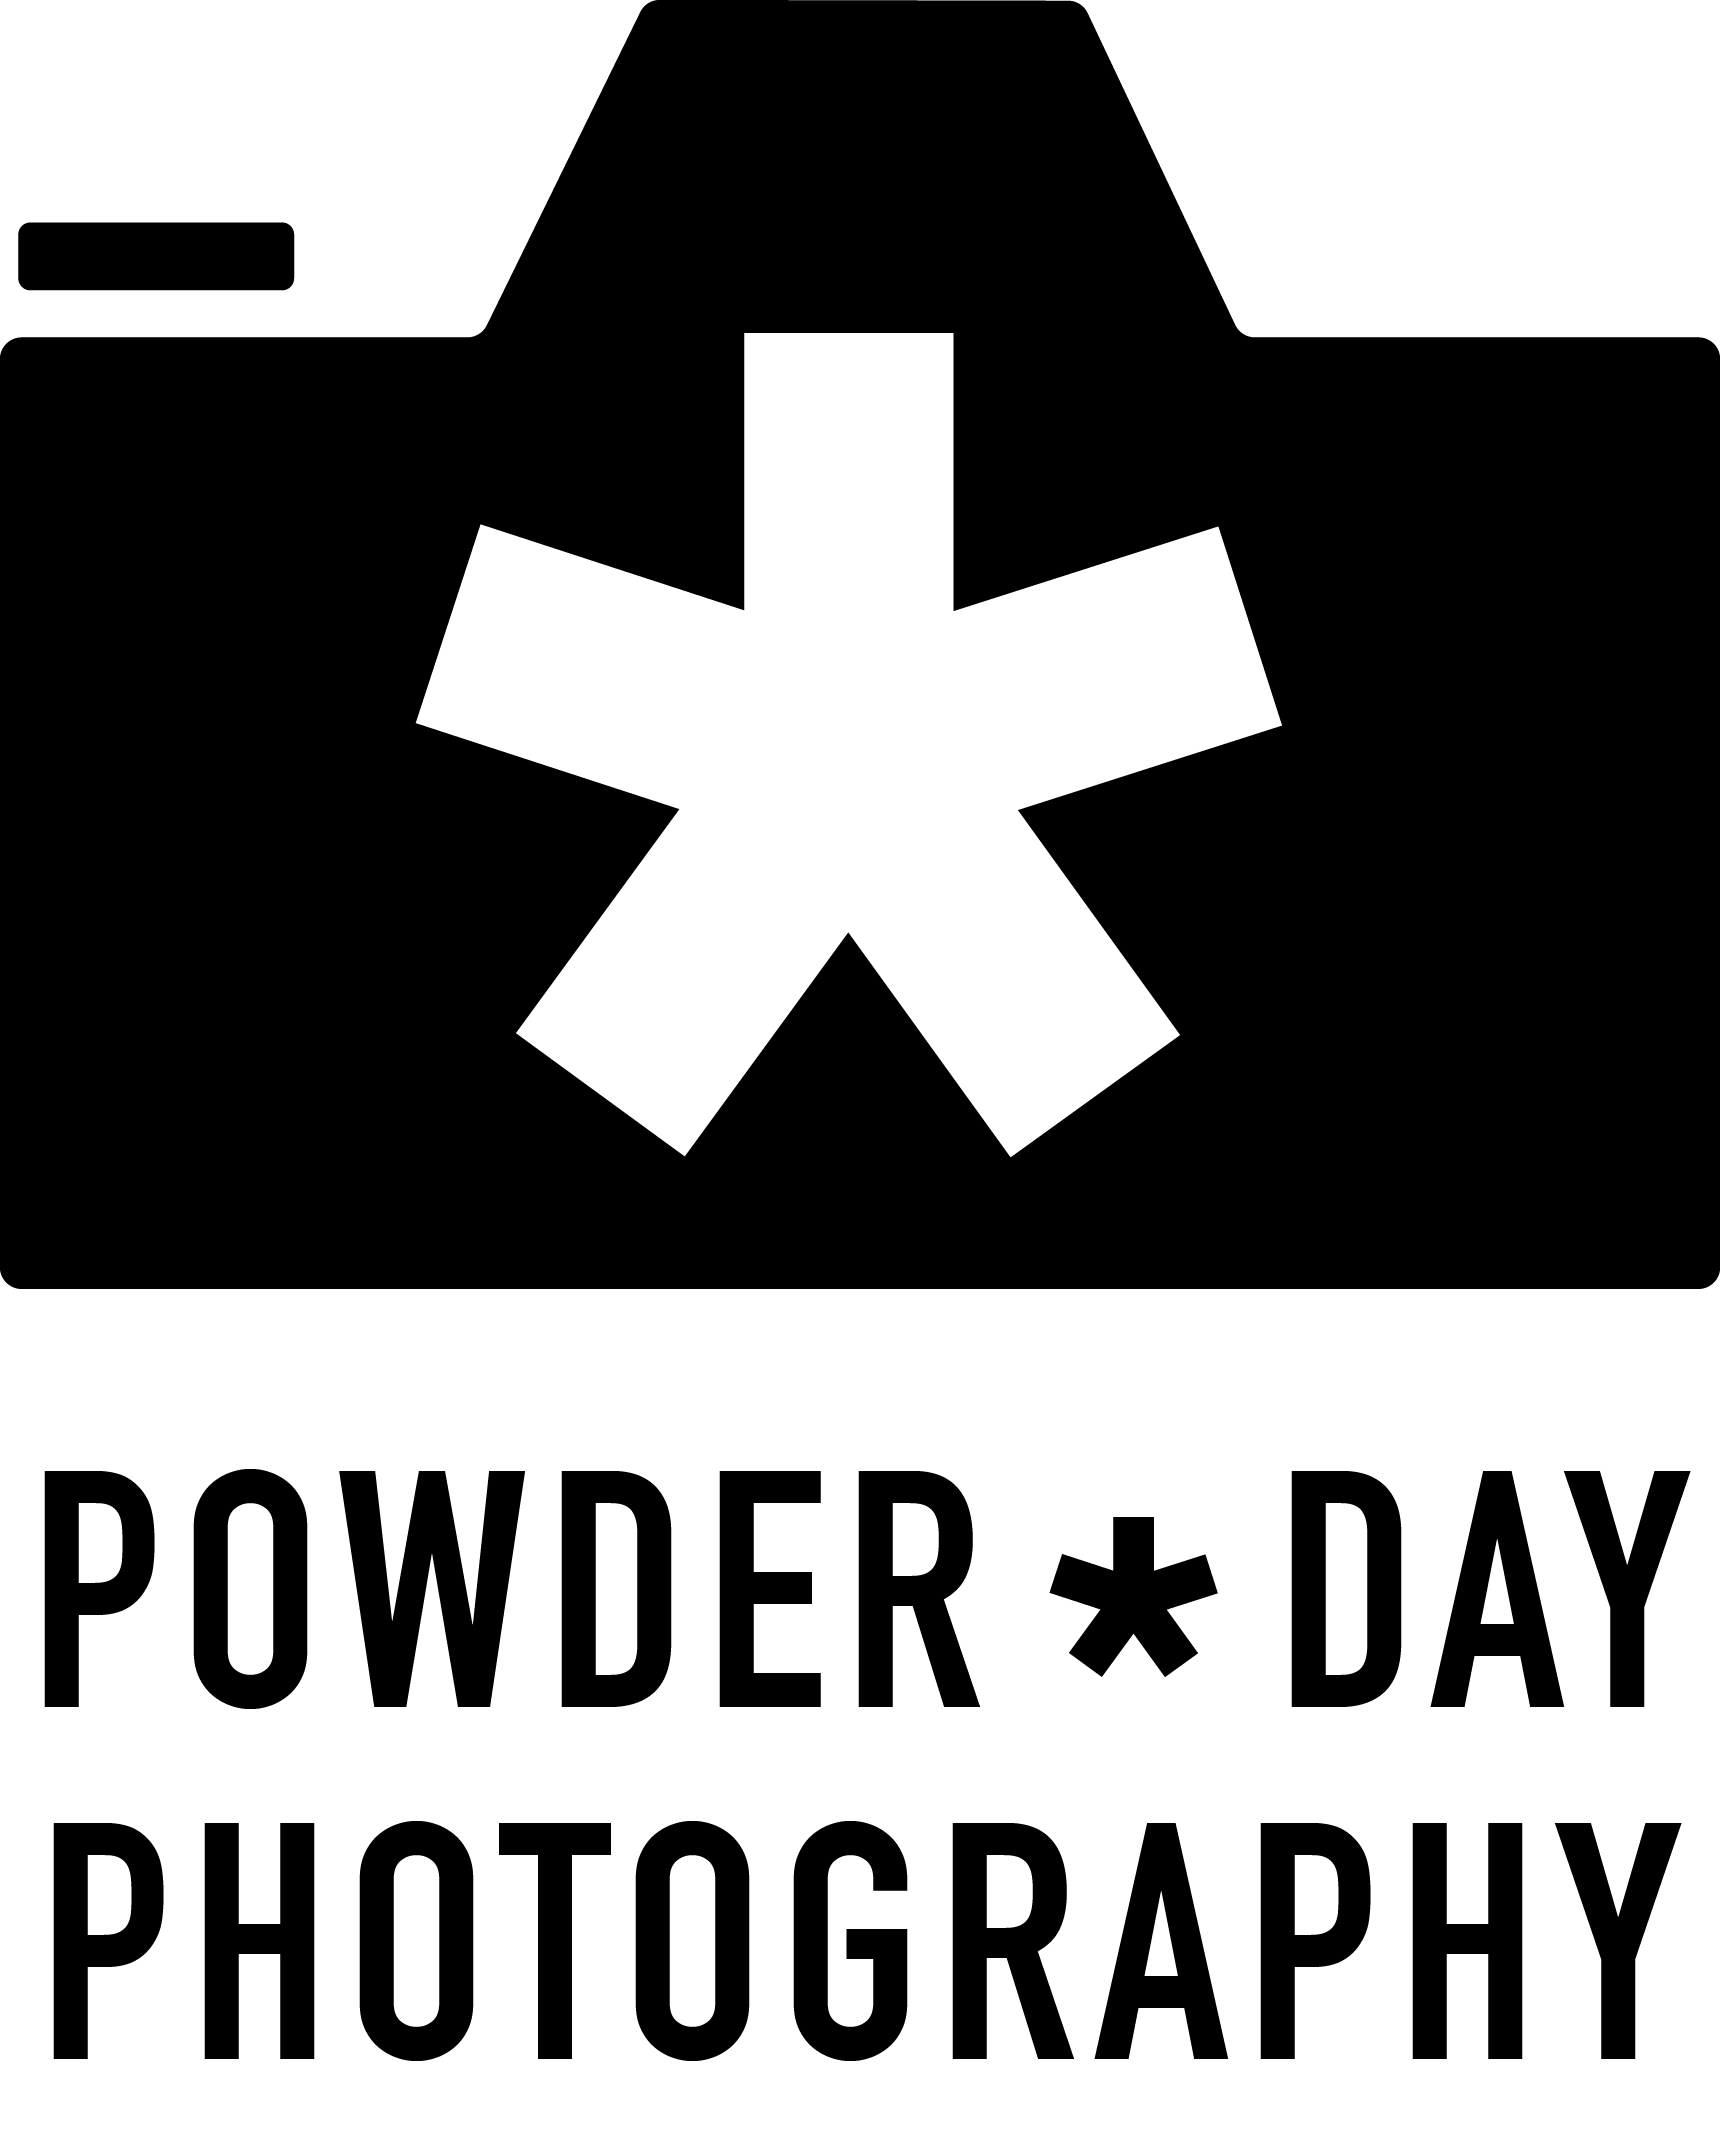 Powder Day Photography